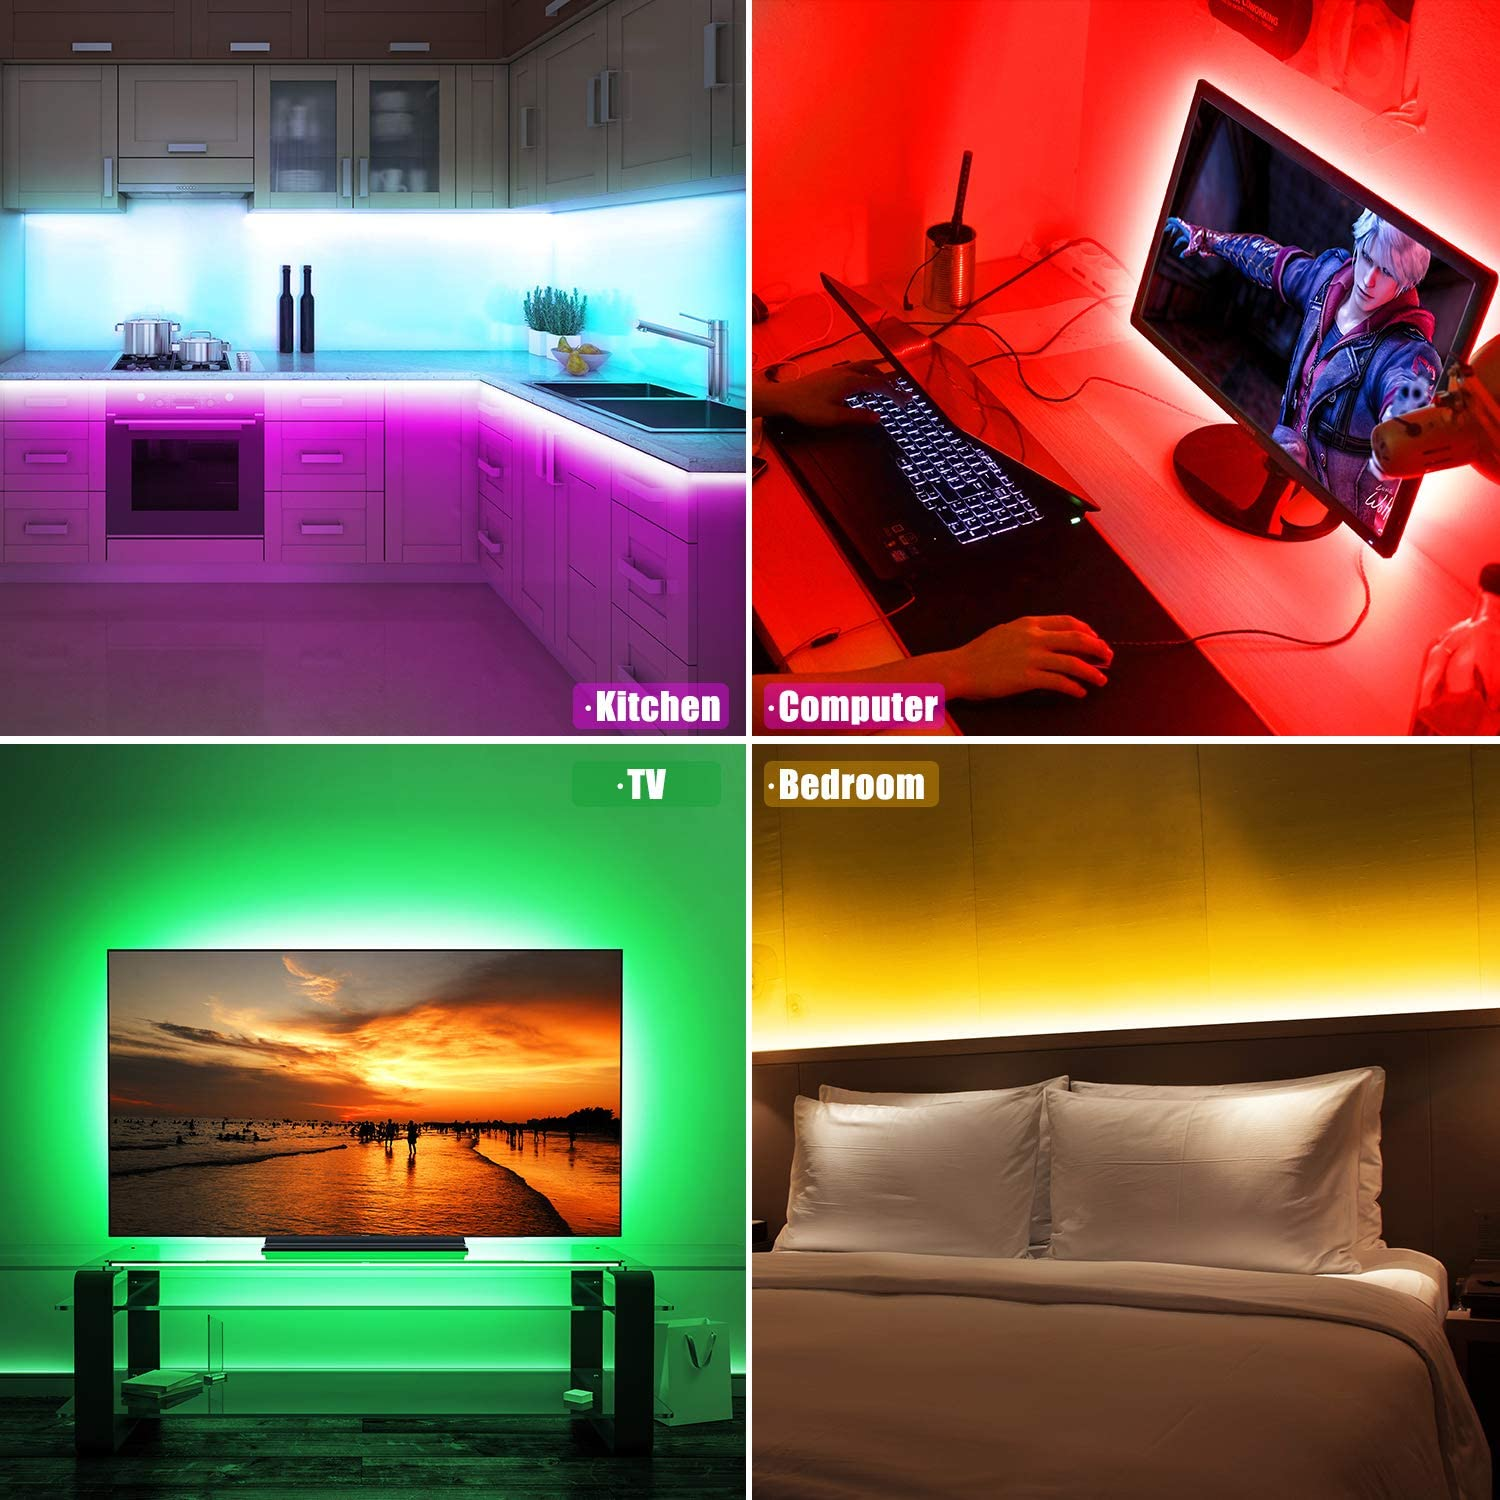 RGB LED Strip Lights (Remote Control Included) - 50% OFF TODAY ONLY!